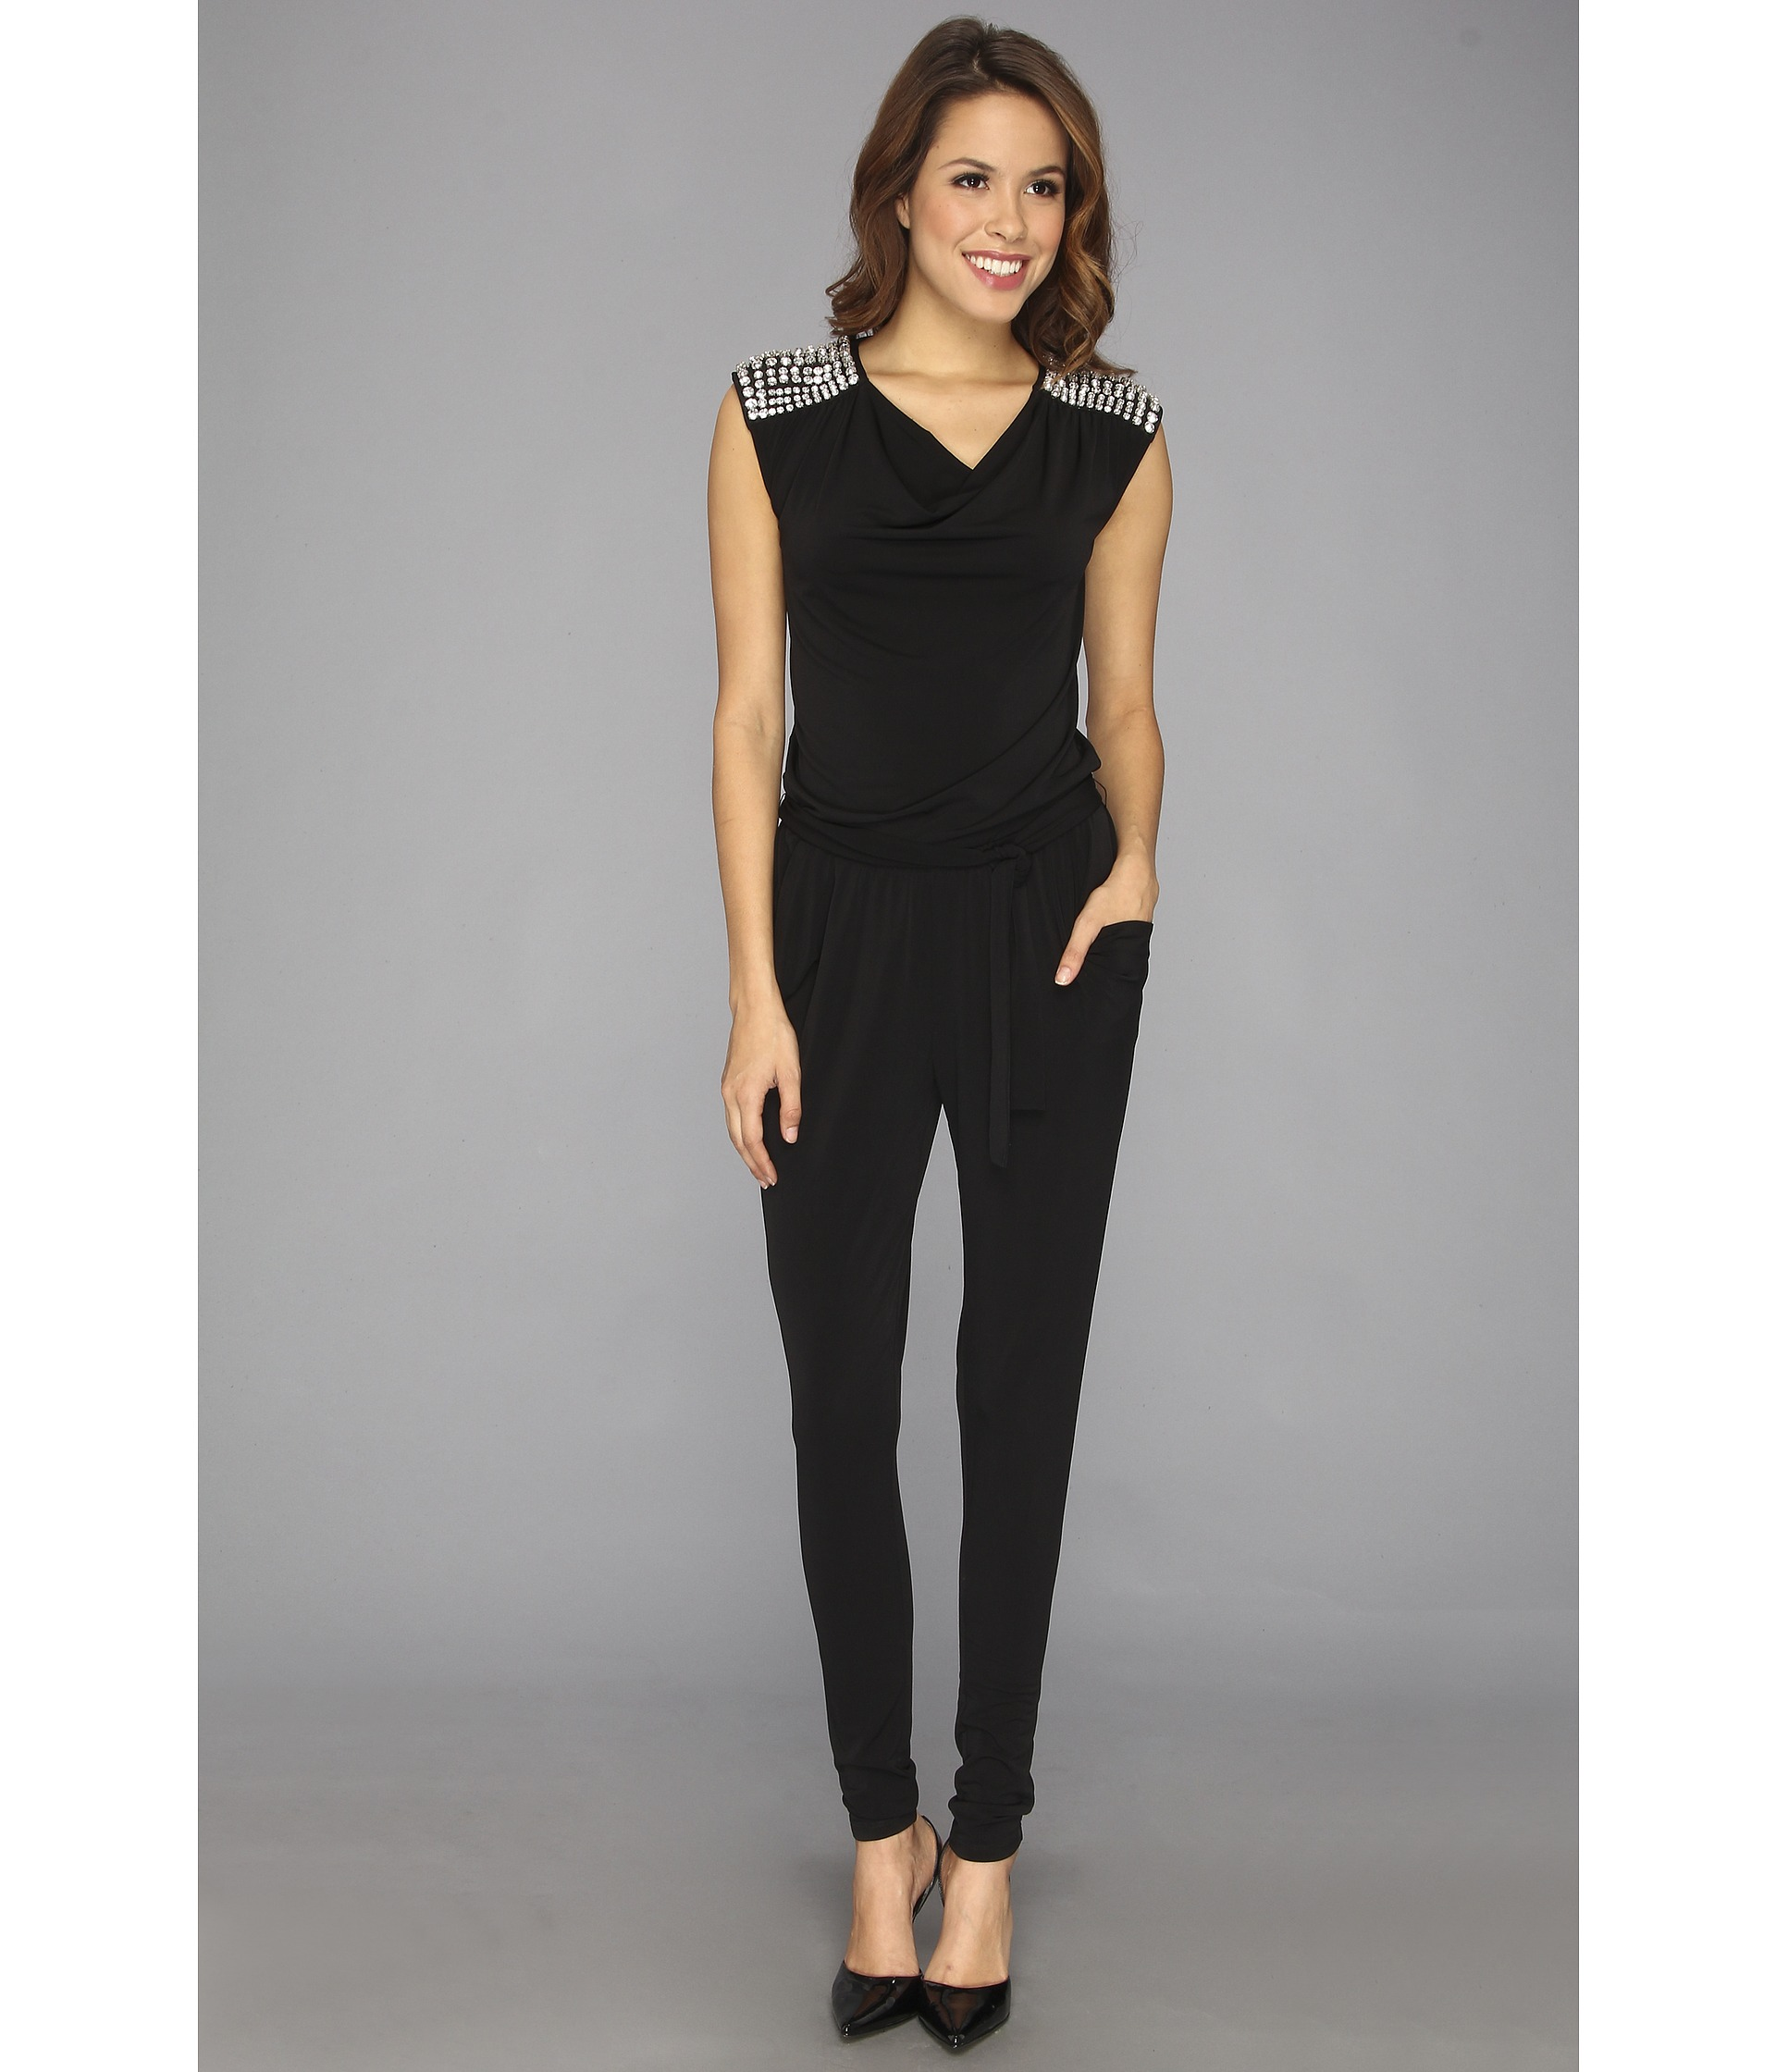 michael michael kors s l cowl rhinestone jumpsuit shipped free at zappos. Black Bedroom Furniture Sets. Home Design Ideas